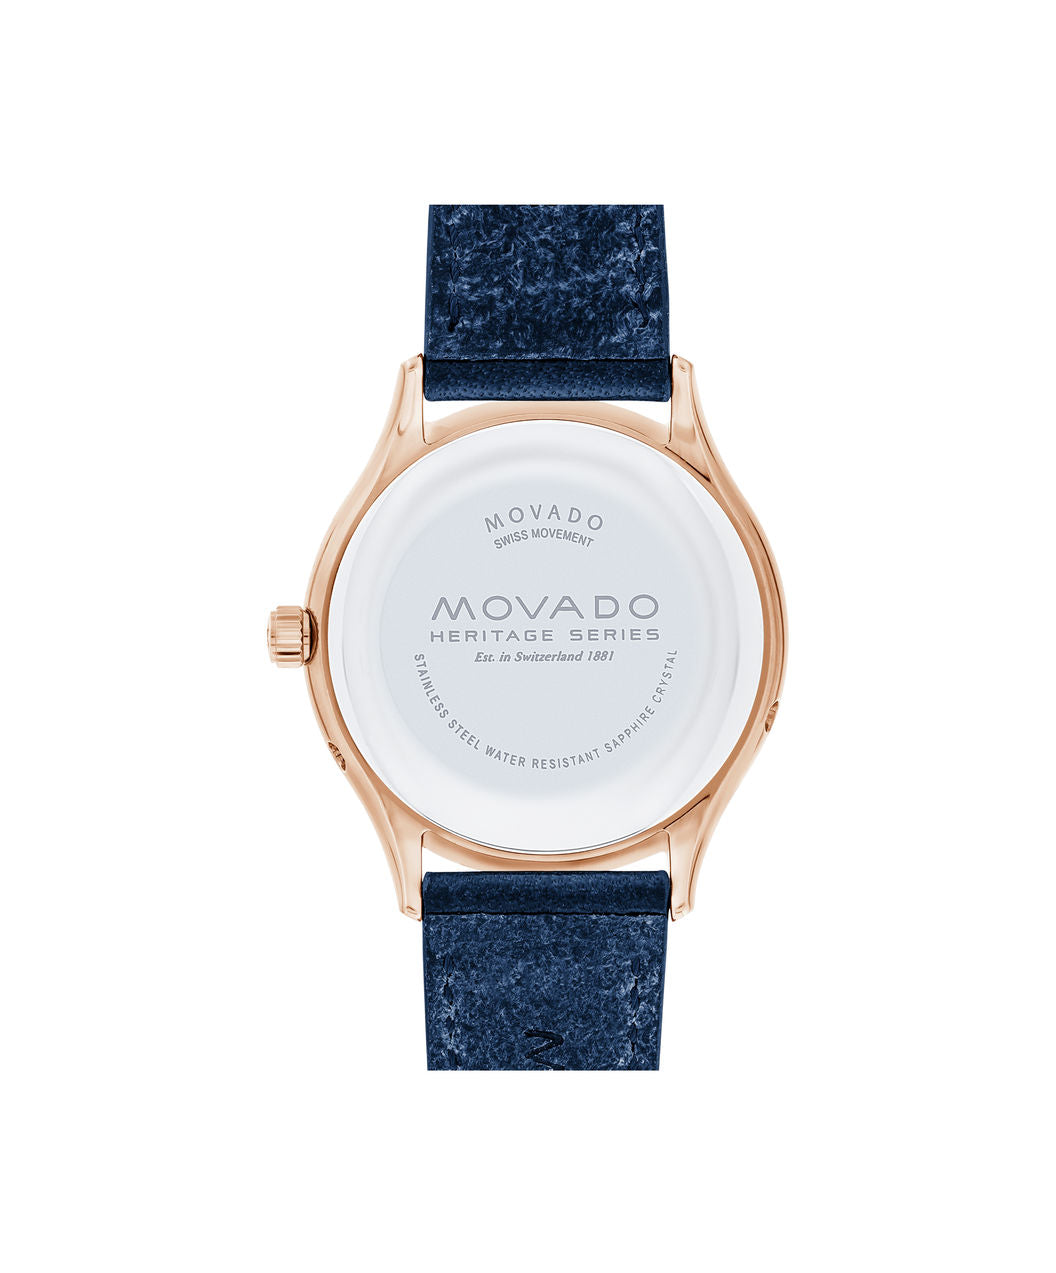 Movado Watch Heritage Series - Celestograf in Rose Gold